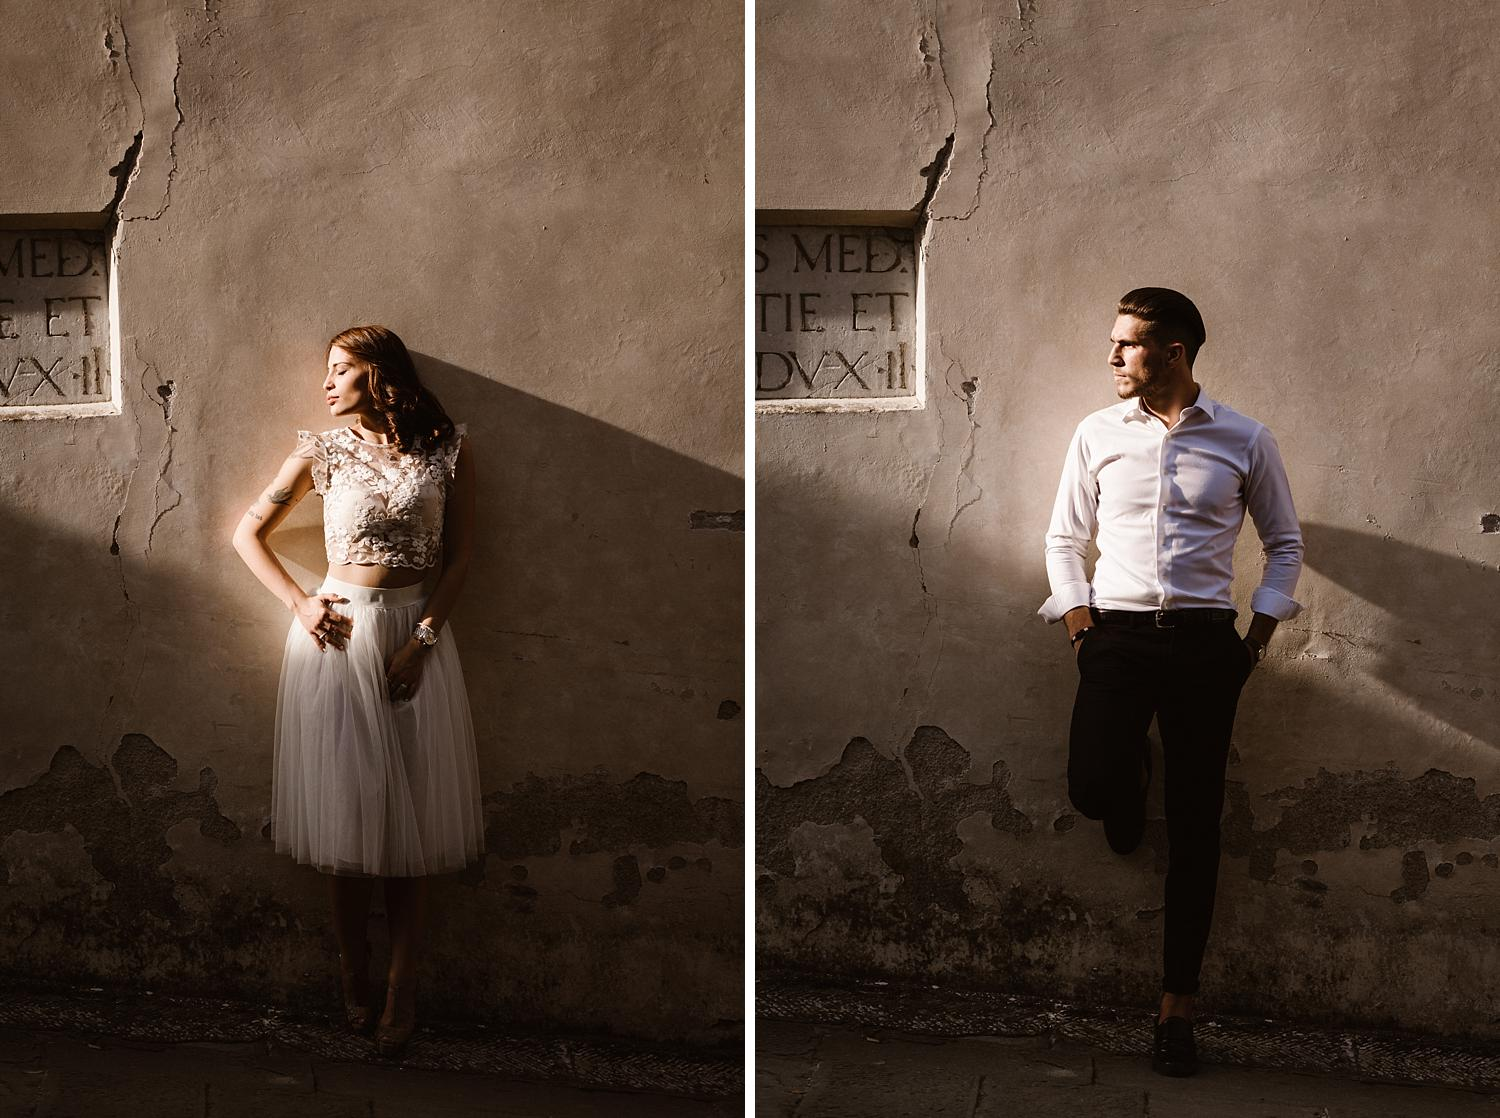 weddingphotographer florence 23 - Maddalena & Arturo - A Chic Anniversary Session in Florence